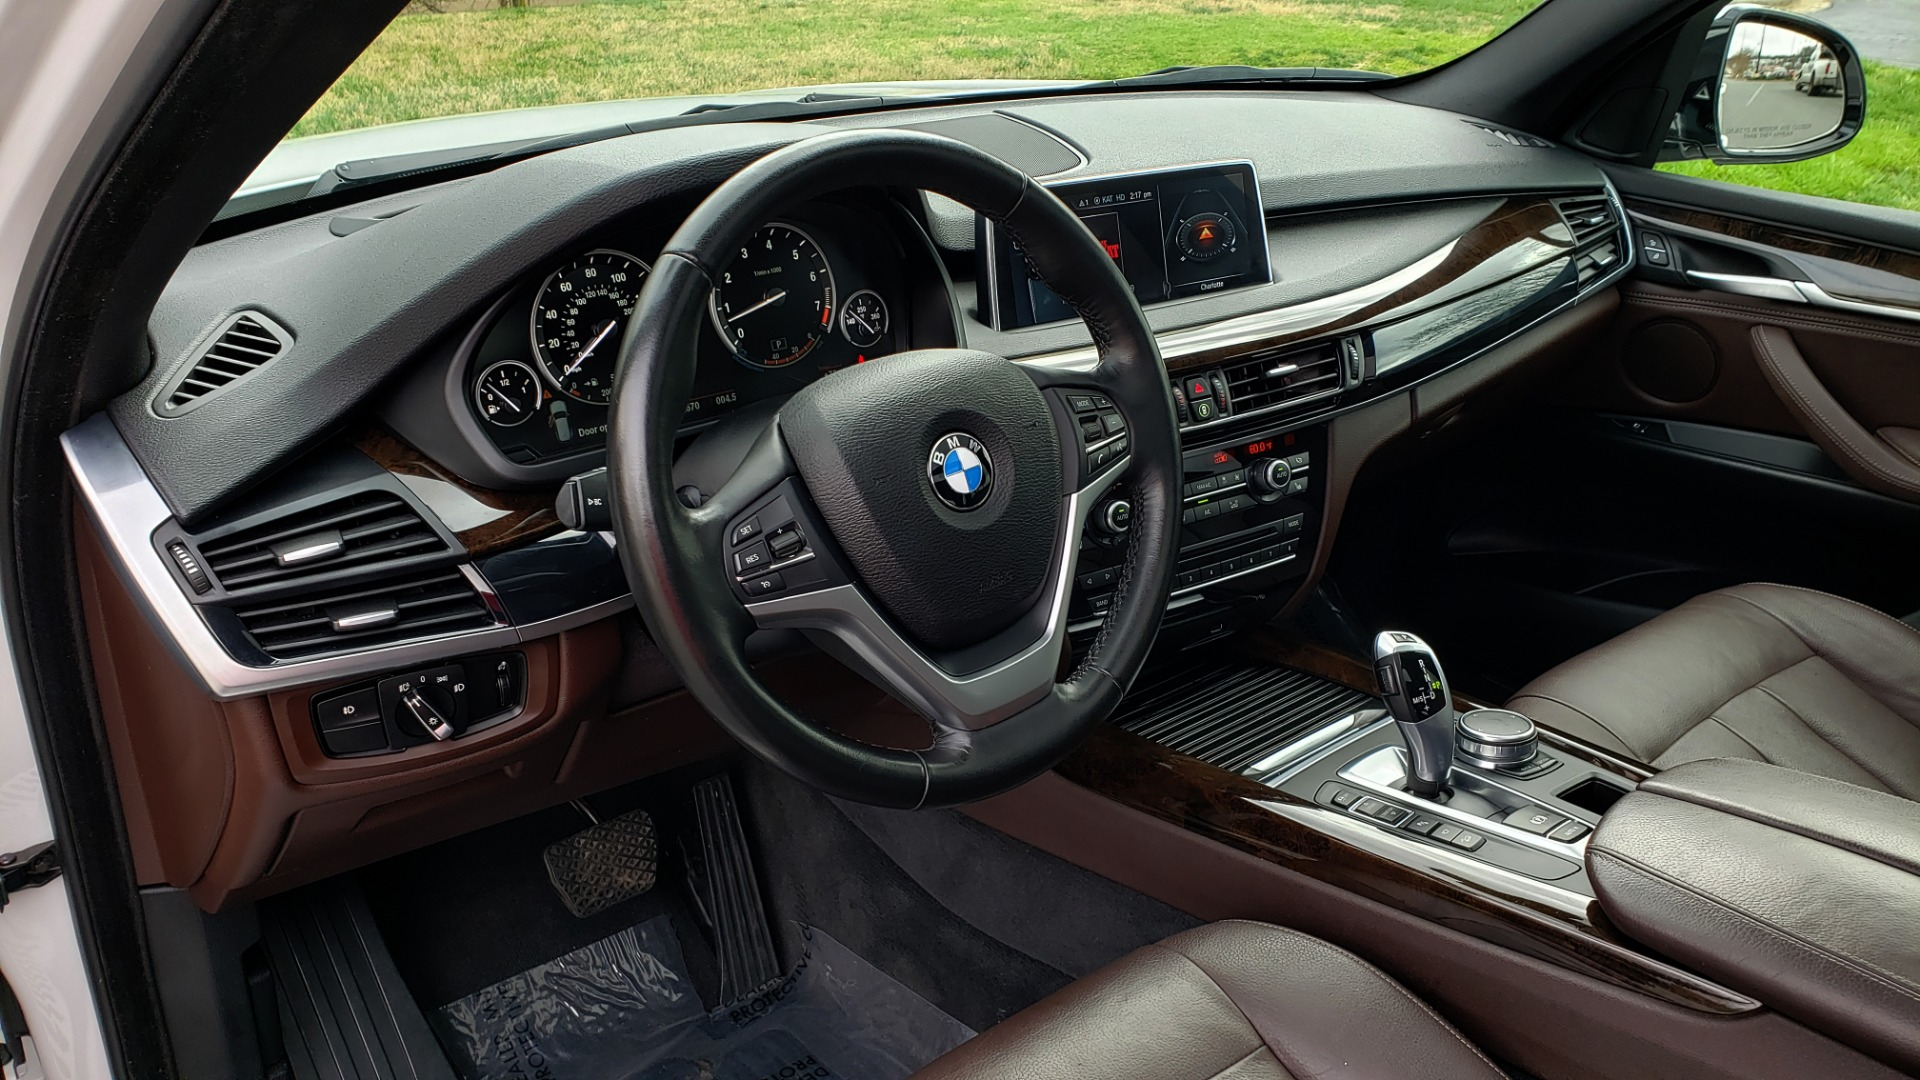 Used 2017 BMW X5 XDRIVE35I / NAV / HUD / DRVR ASST / SUNROOF / REARVIEW for sale Sold at Formula Imports in Charlotte NC 28227 37